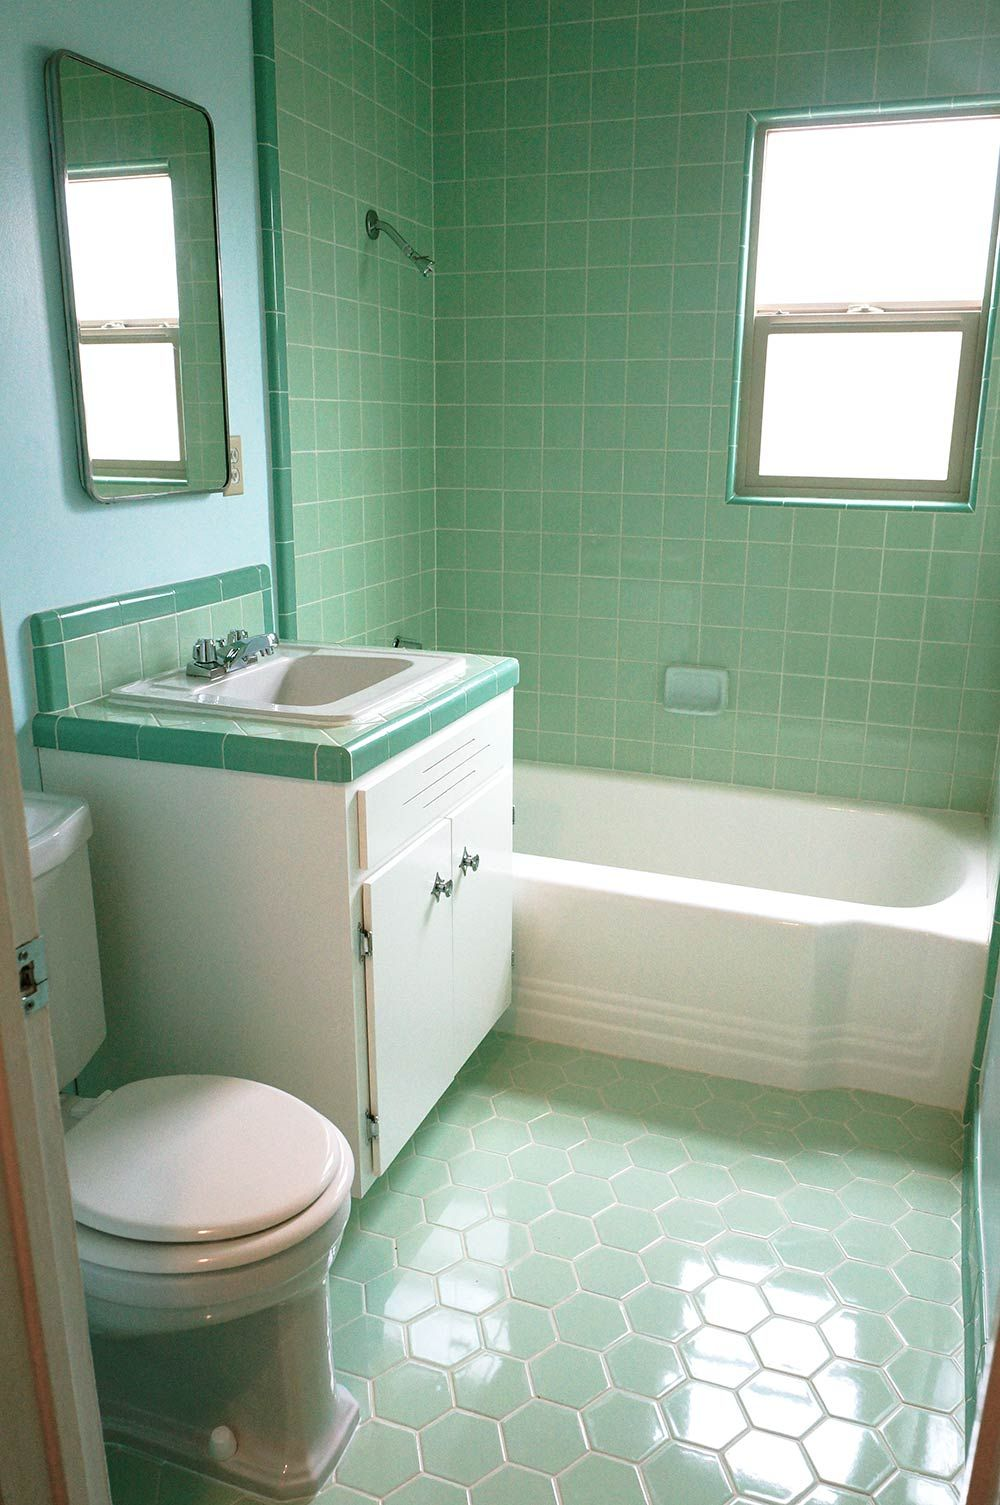 The Color Green In Kitchen And Bathroom Sinks Tubs Toilets From 1928 To 1962 Retro Renovation